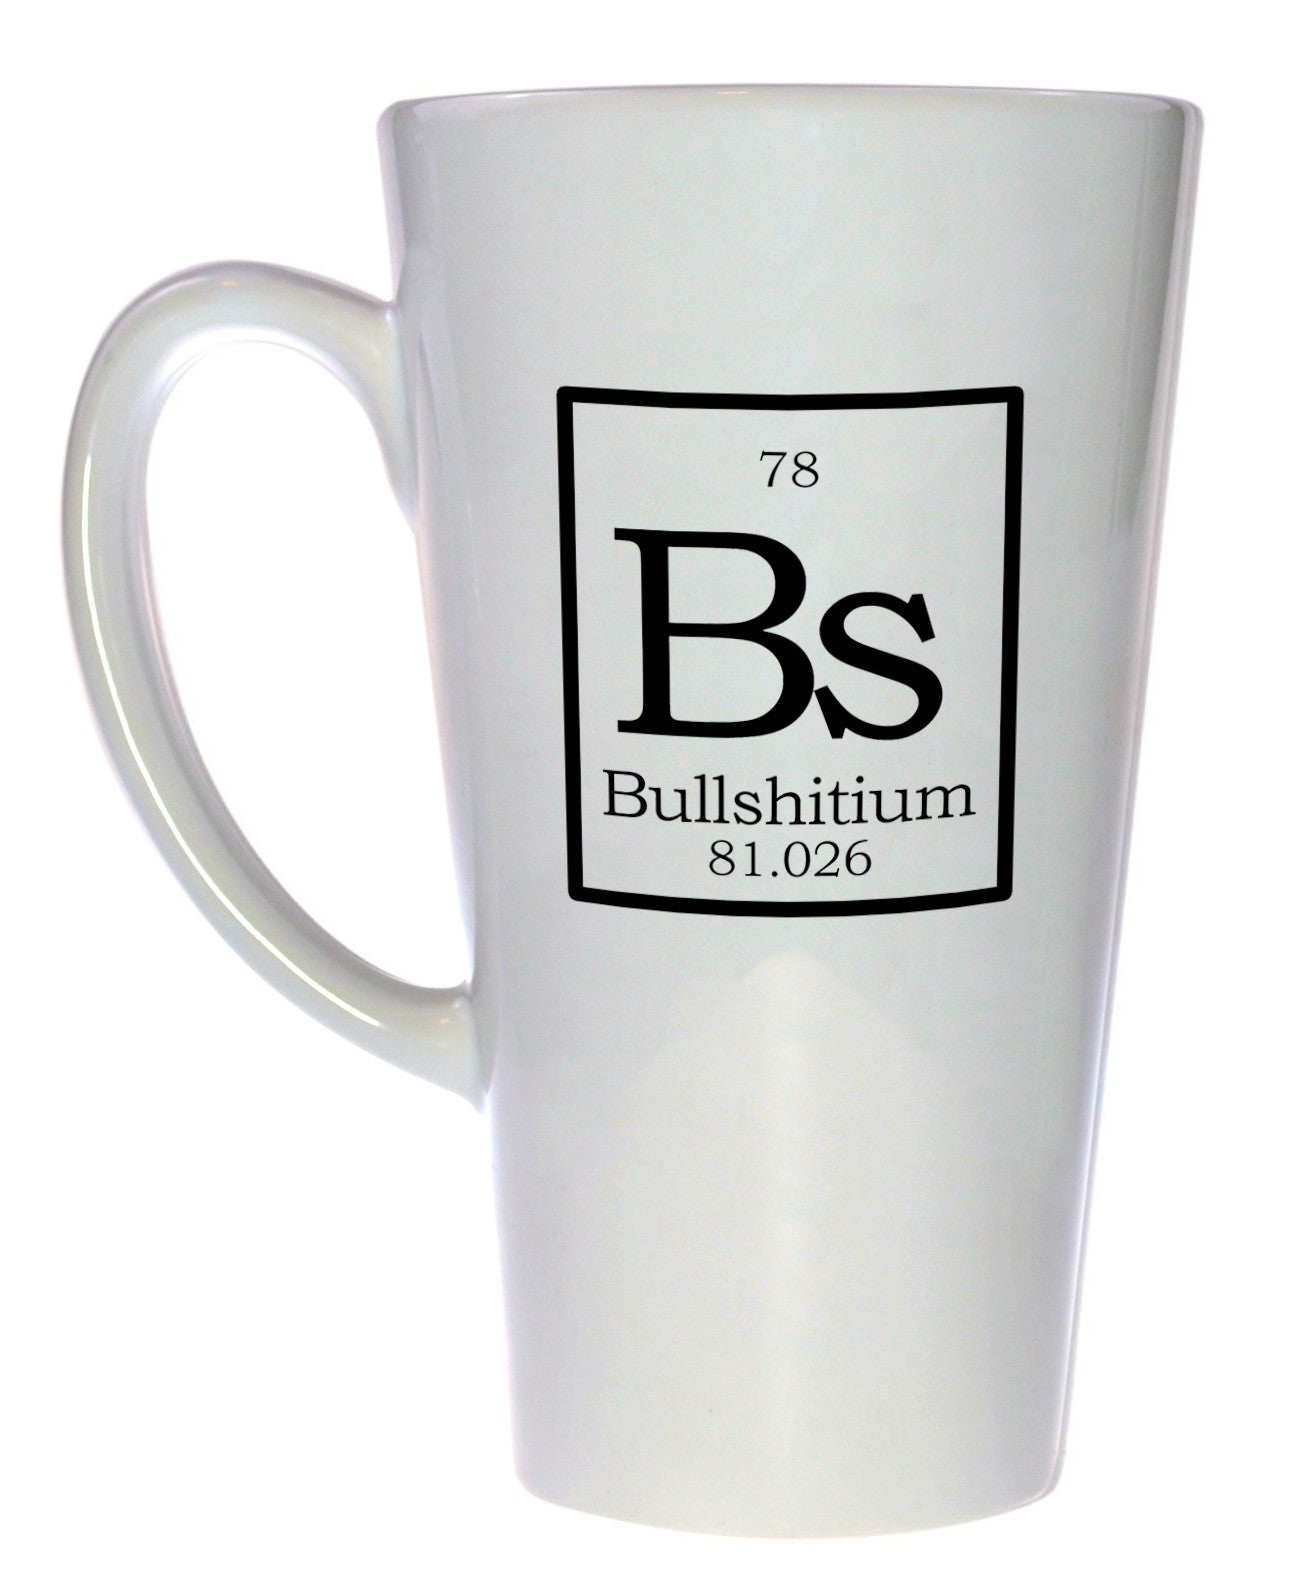 Element Bs Bullshittium Fake Periodic Table Chemistry Elements